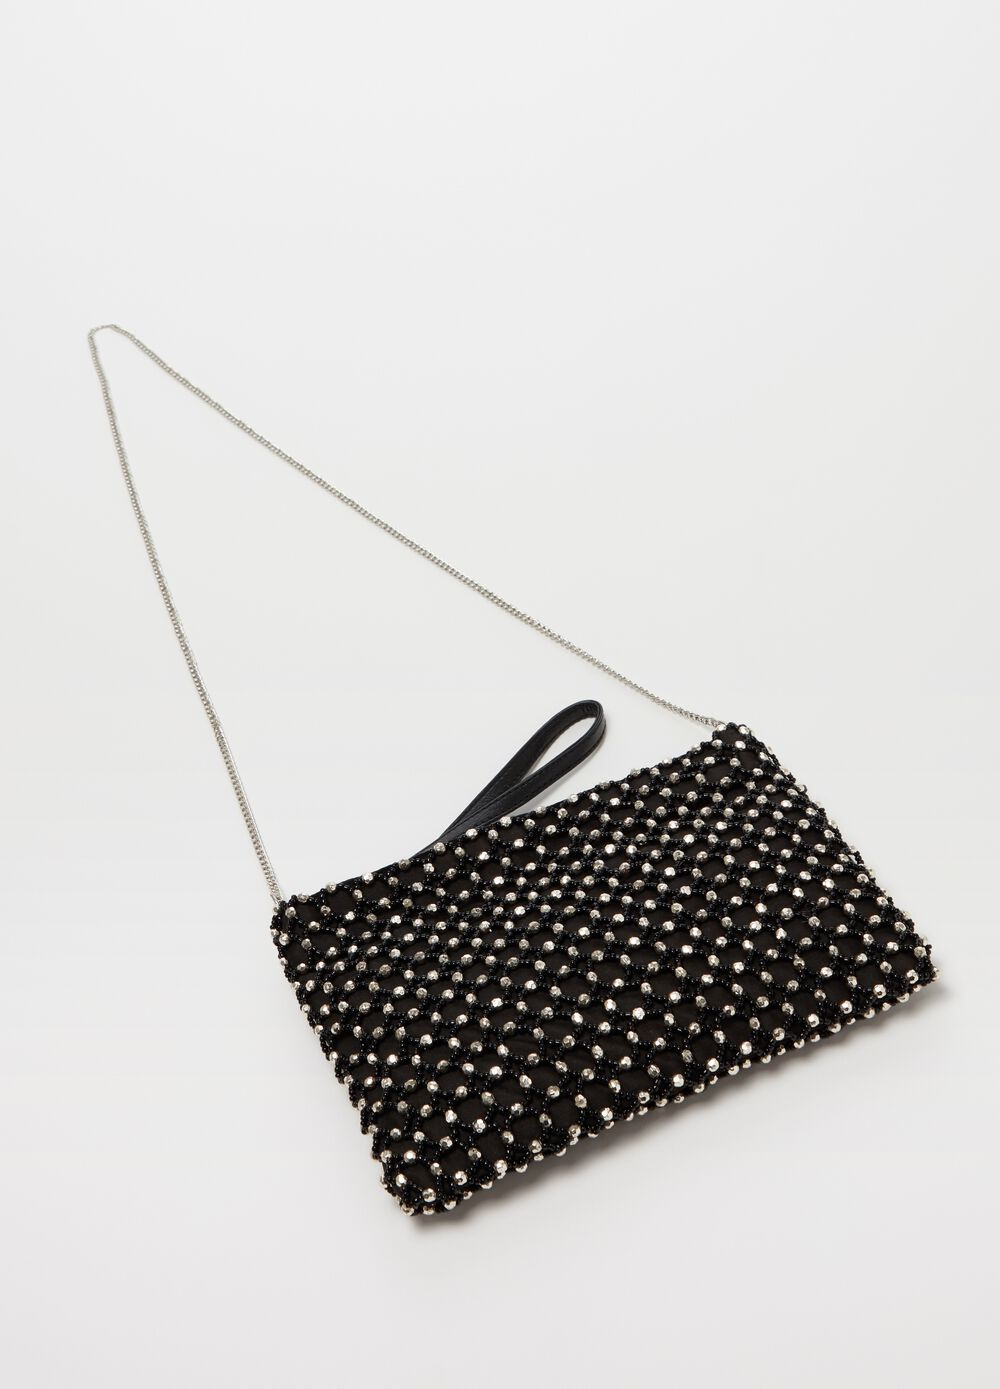 Soft clutch with beads and zip